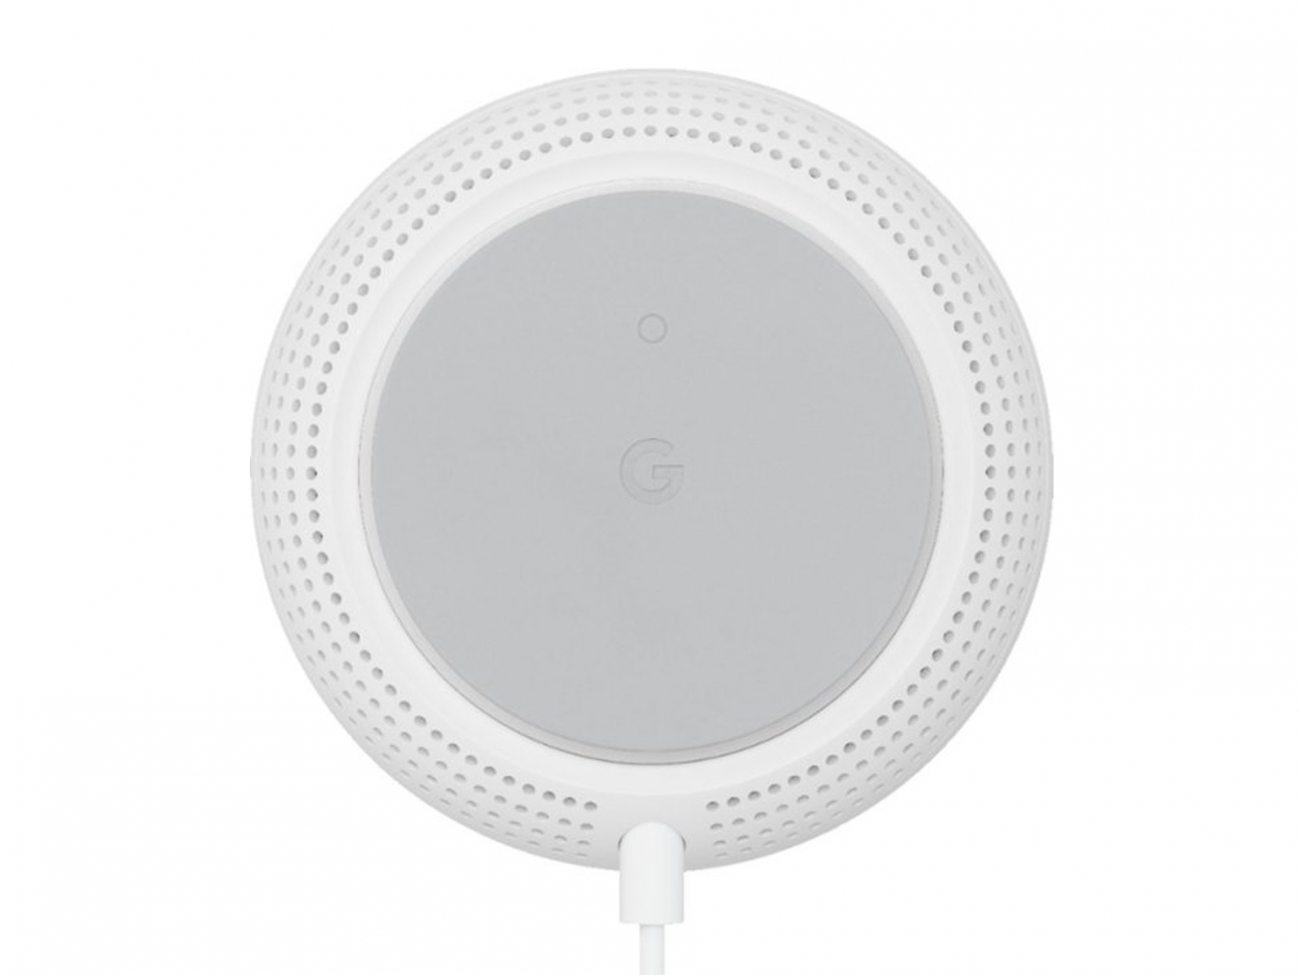 Google Nest Wi-Fi Router and Nest Wifi Add-On Point. Домашняя WiFi-система